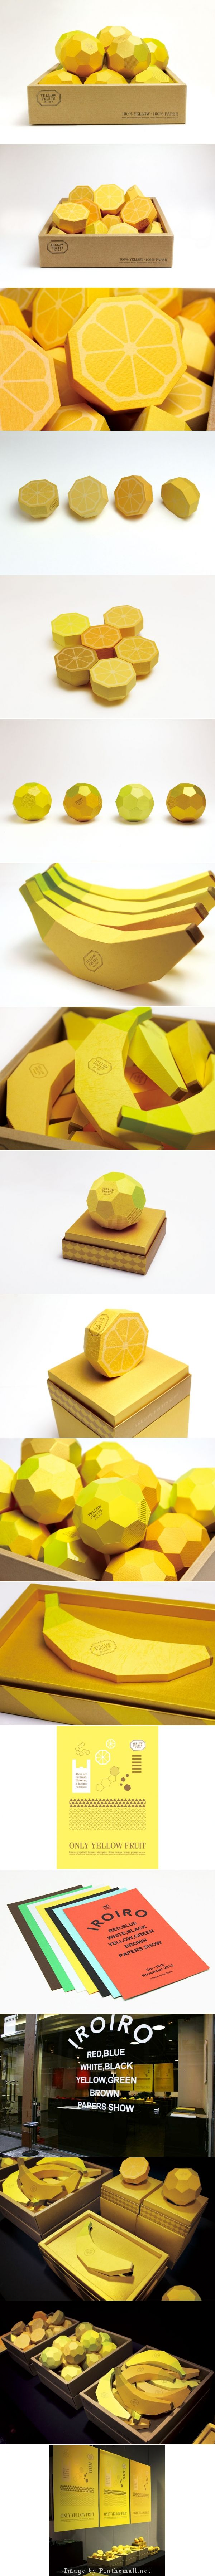 Some really cool yellow fruit #packaging #designs for the Irioro papers show by Safari Design curated by Packaging Diva PD -created via http://safari-design.com/iroiro/